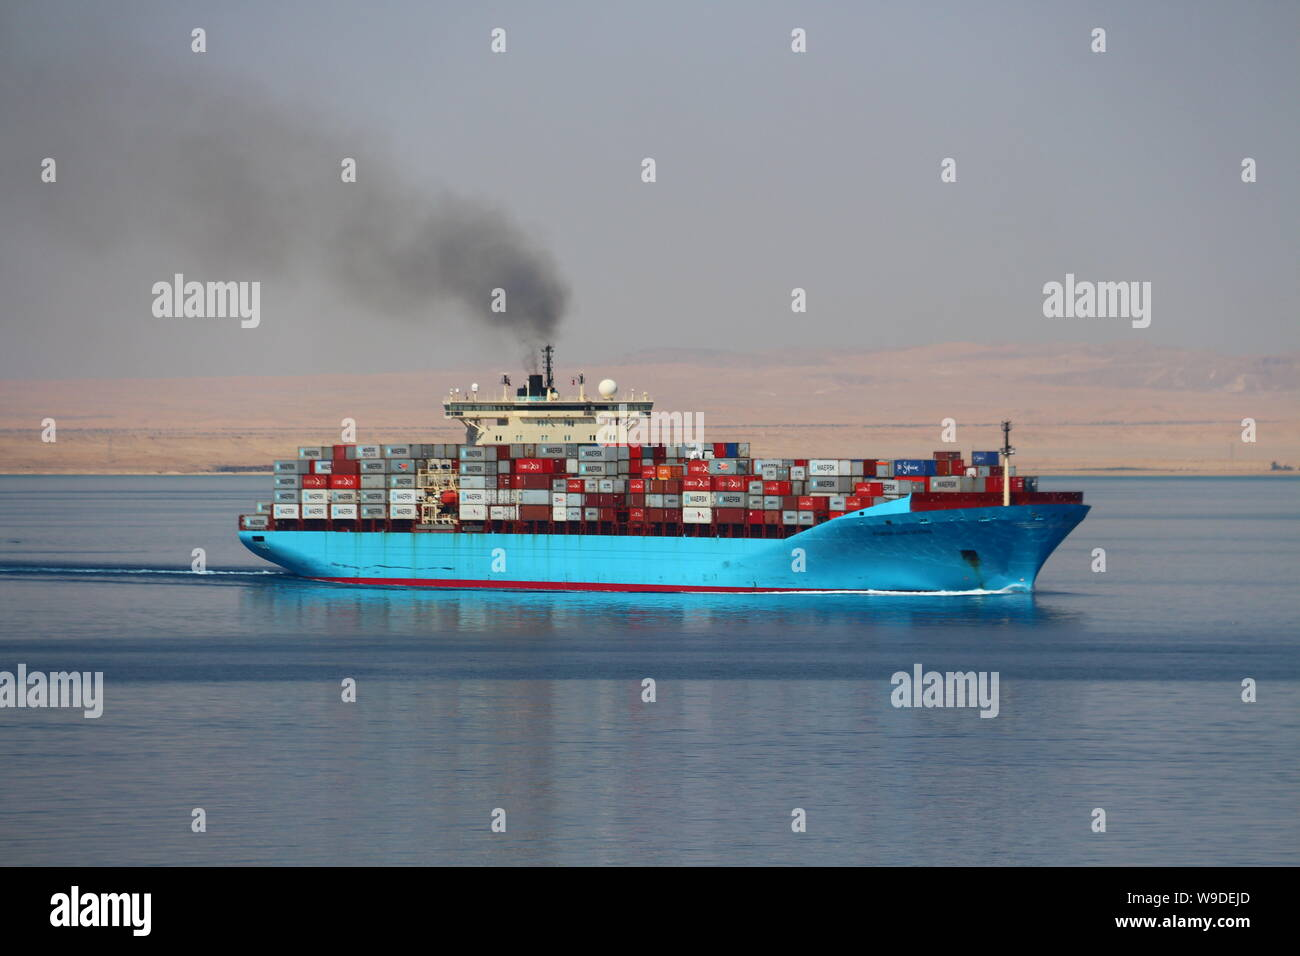 Container ship Maersk Karlskrona departing the Suez Canal and proceeding into the Red Sea. Stock Photo